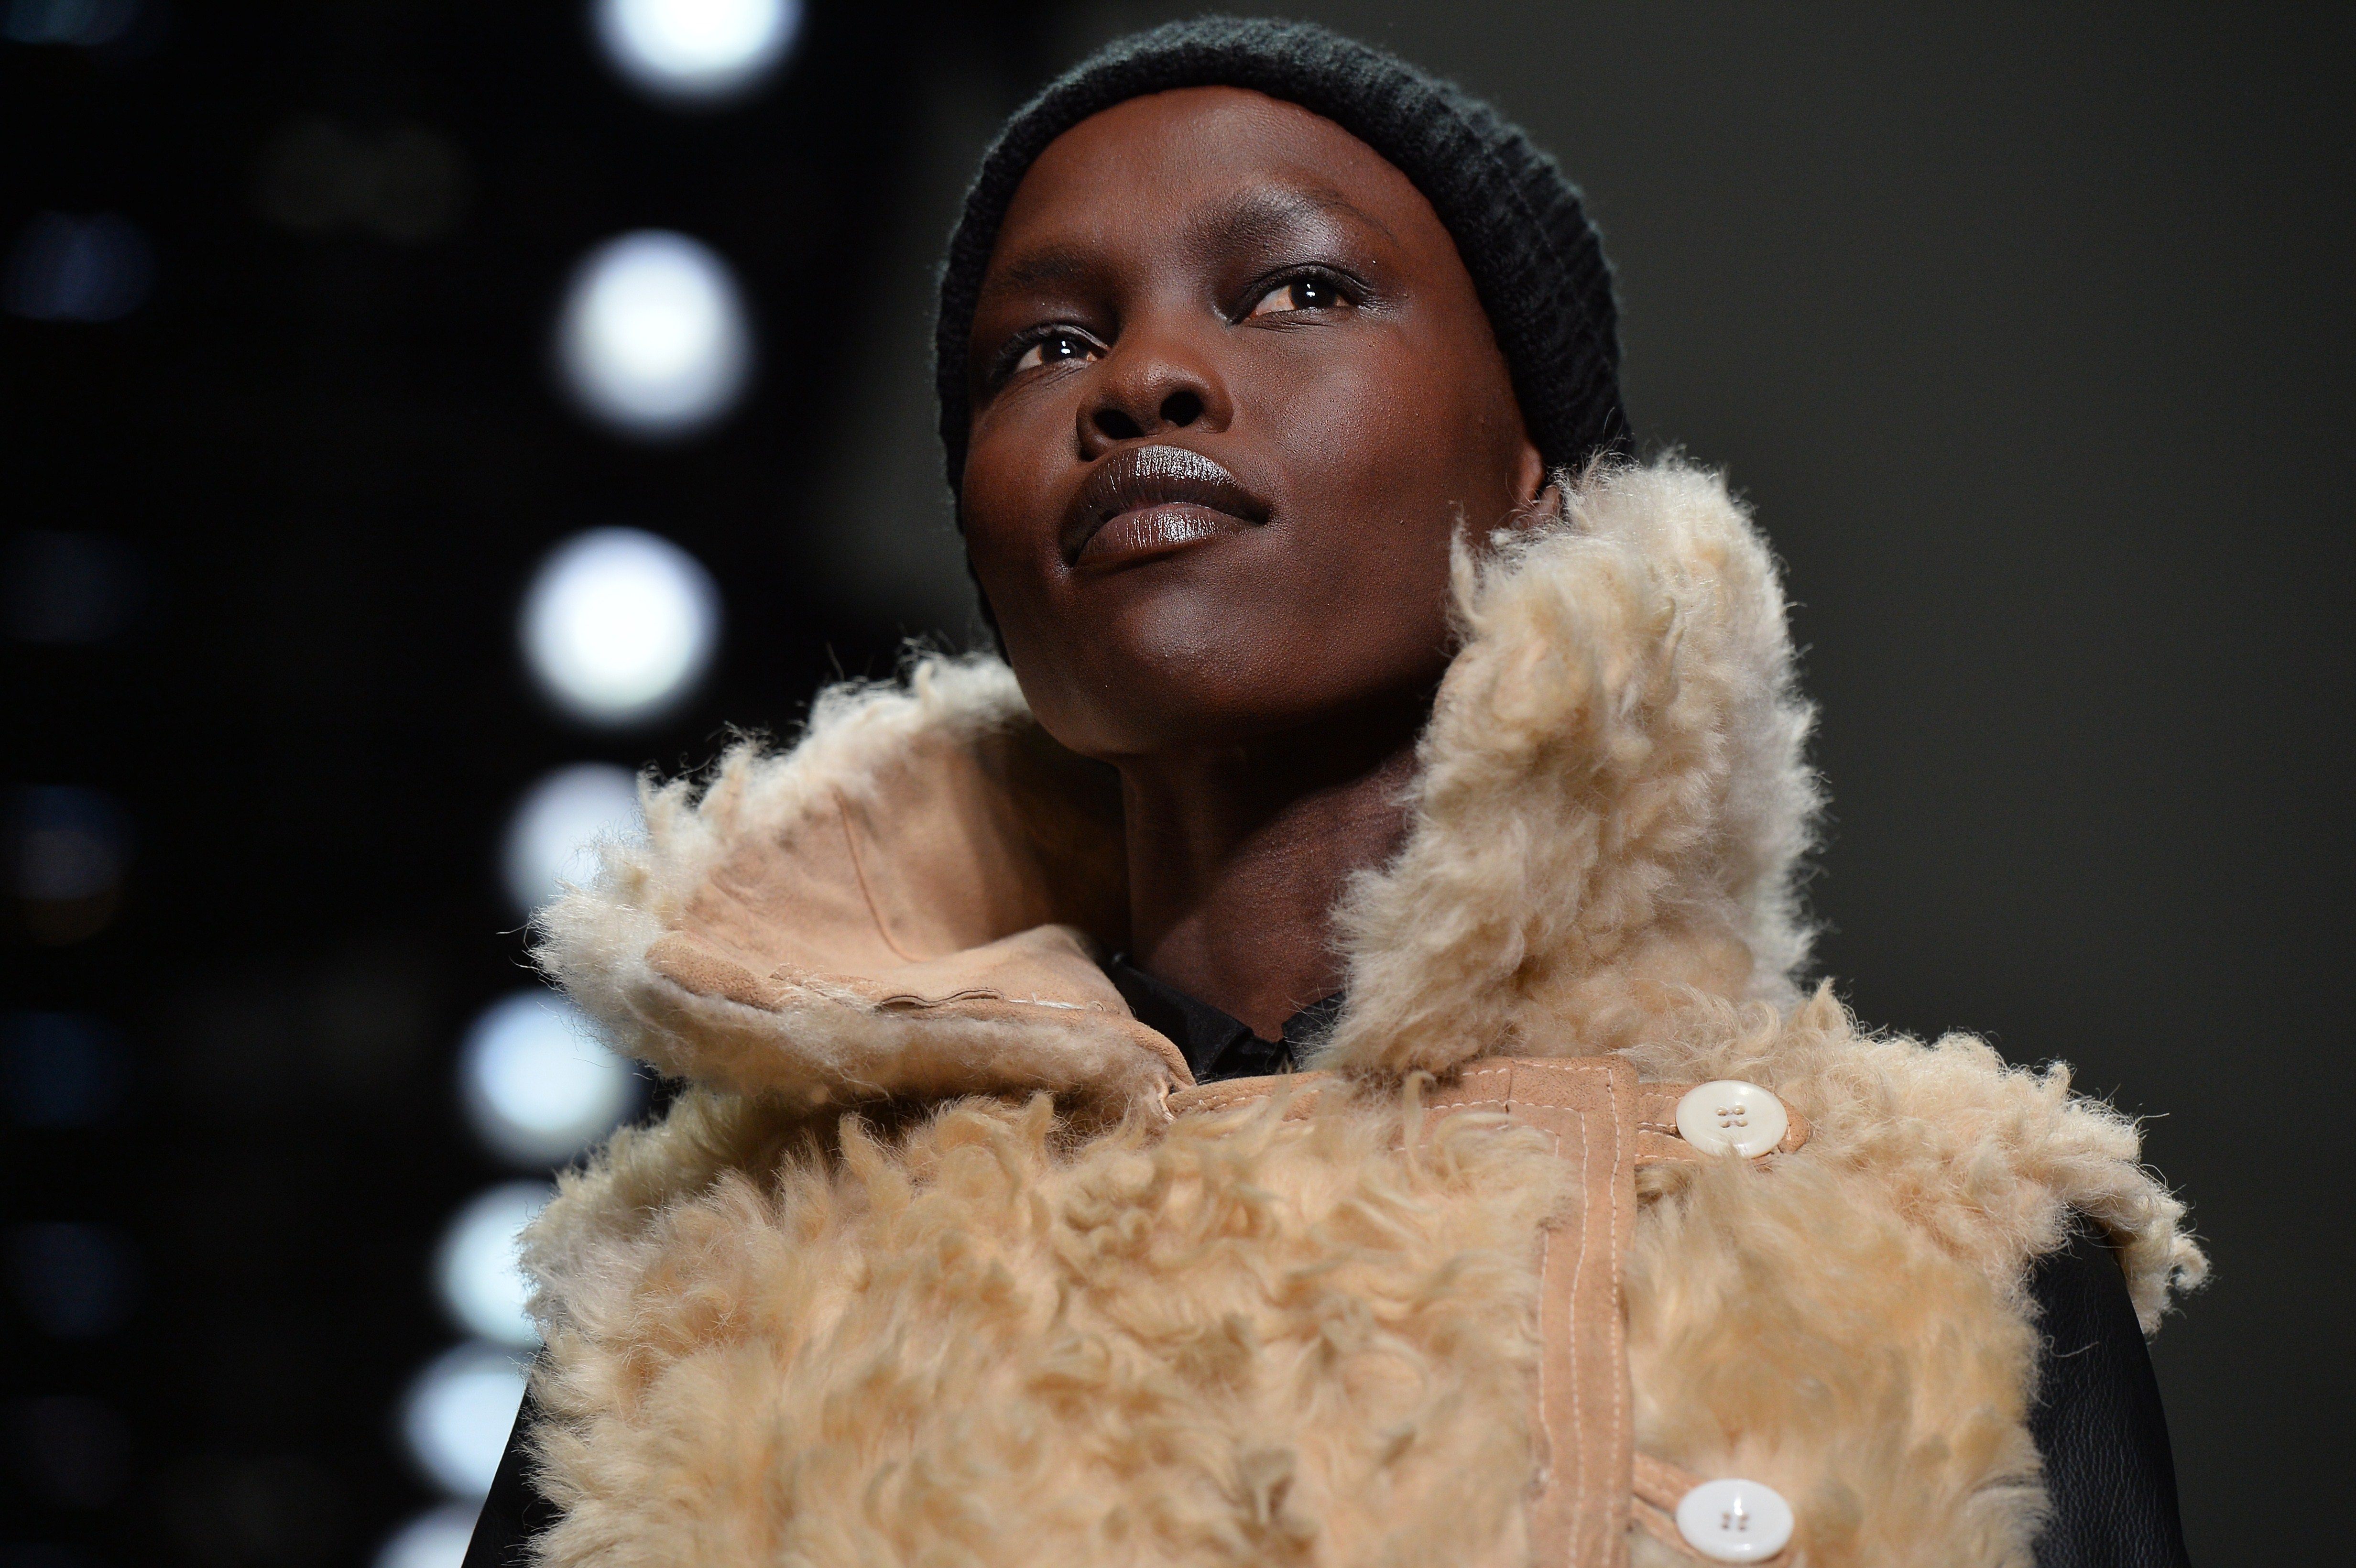 London Fashion Week: The top beauty looks from day one